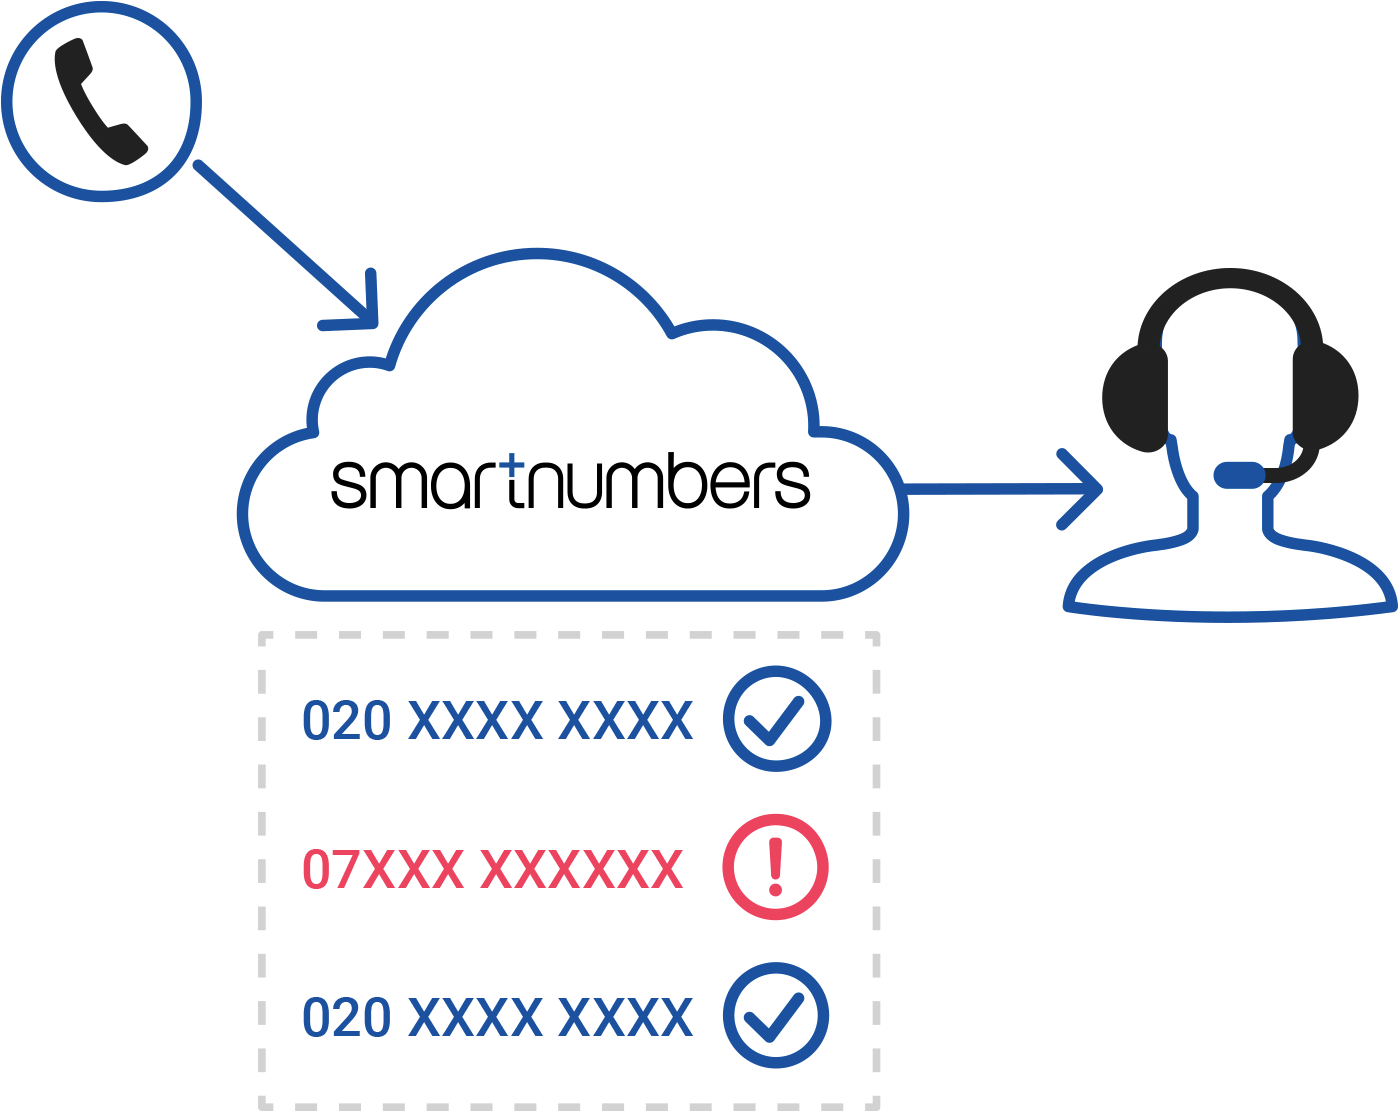 Transparent number line clipart 0-20 - Smartnumbers Protect